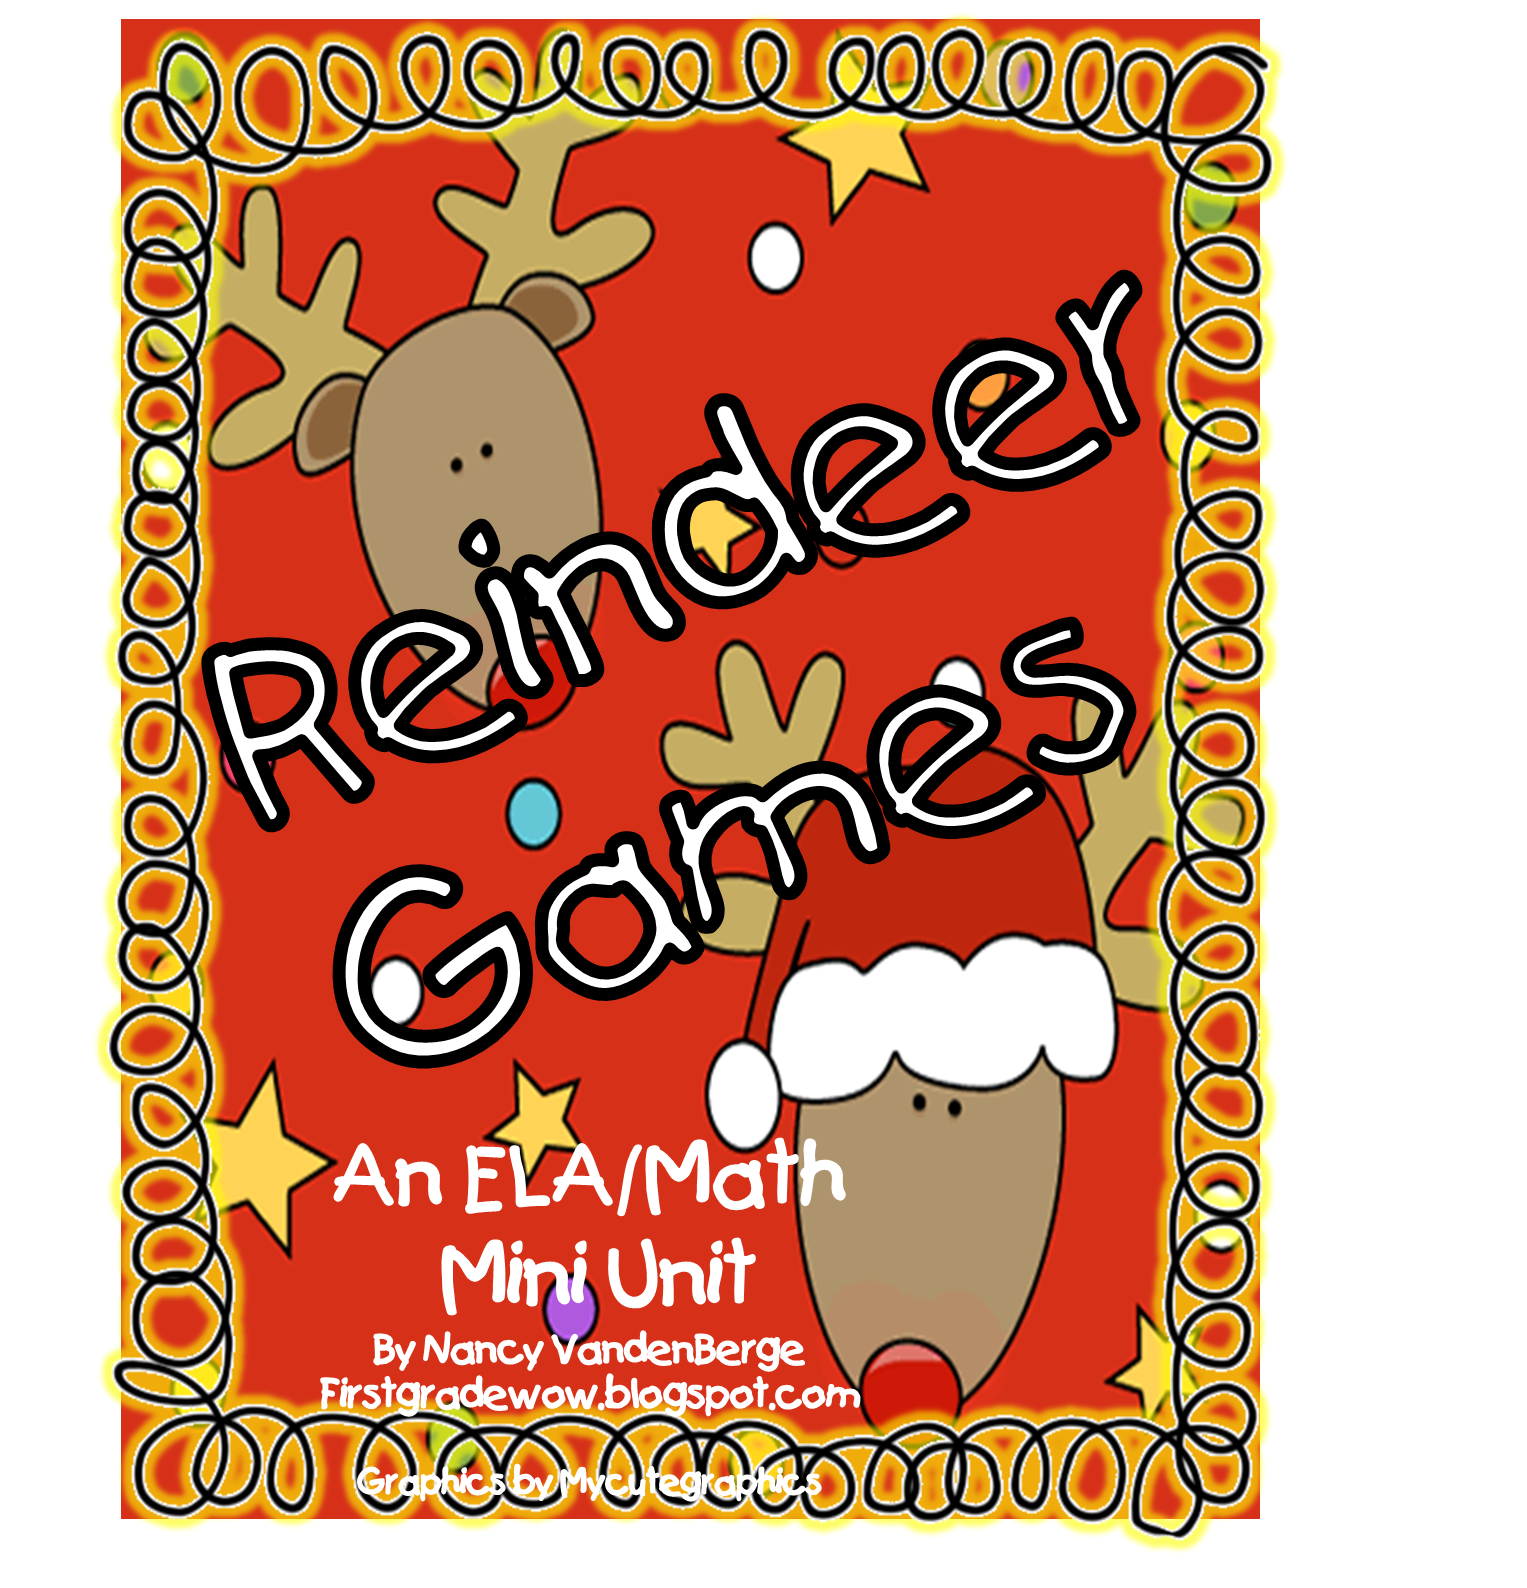 Sharing My Reindeer Games Mini Unit Free First Grade Wow